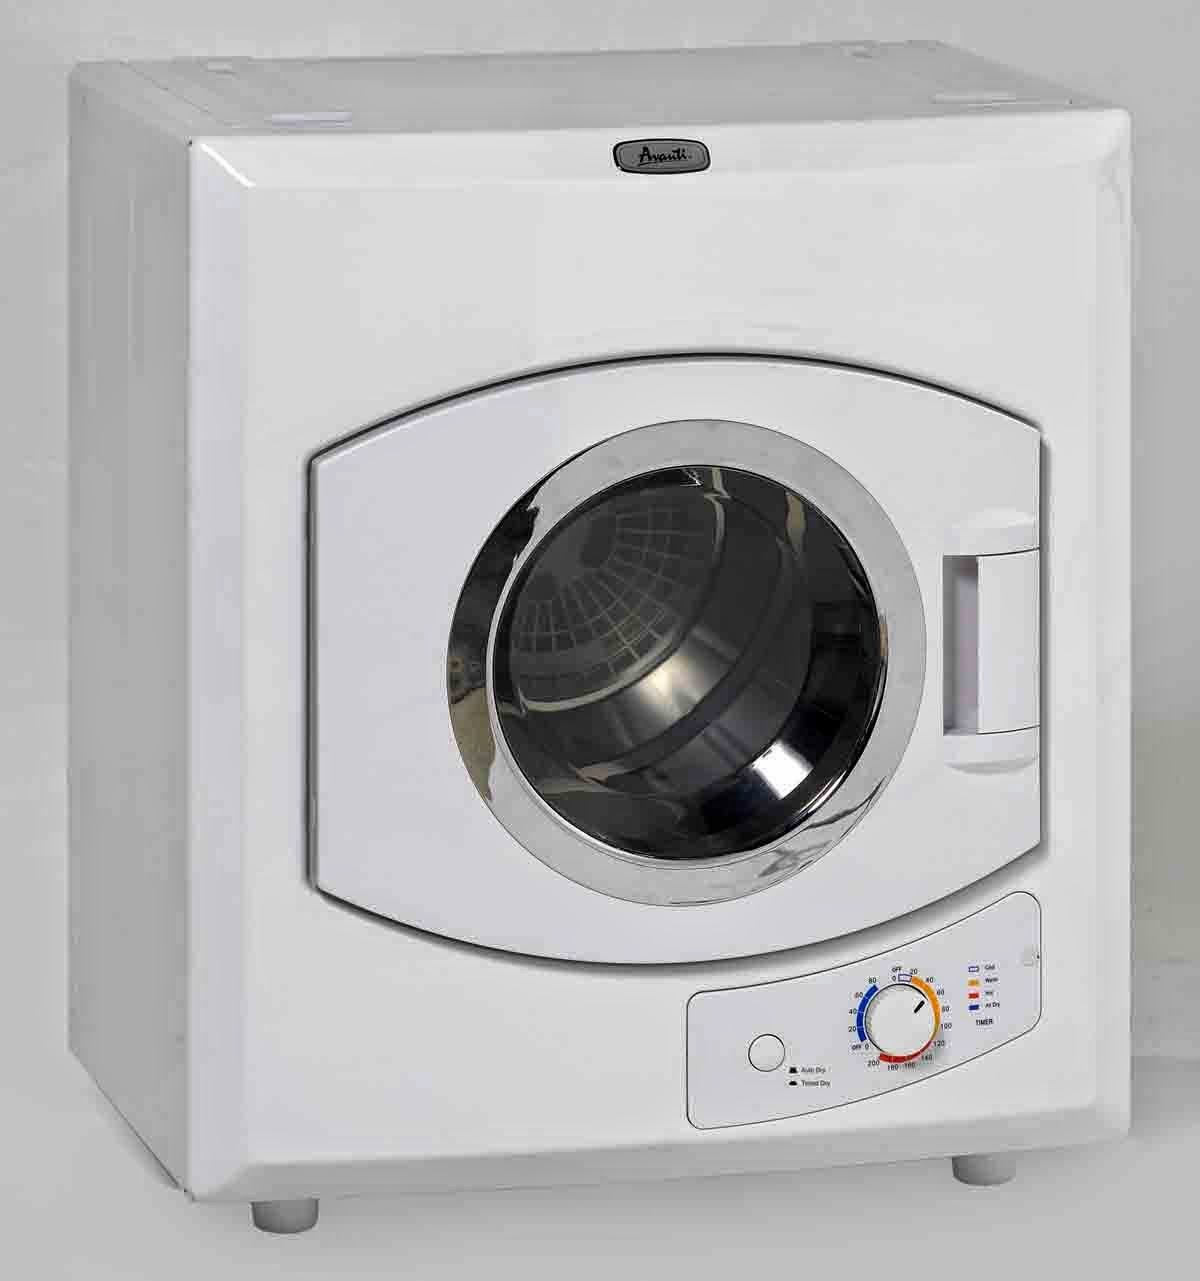 stackable washer dryer: compact stackable washer dryer